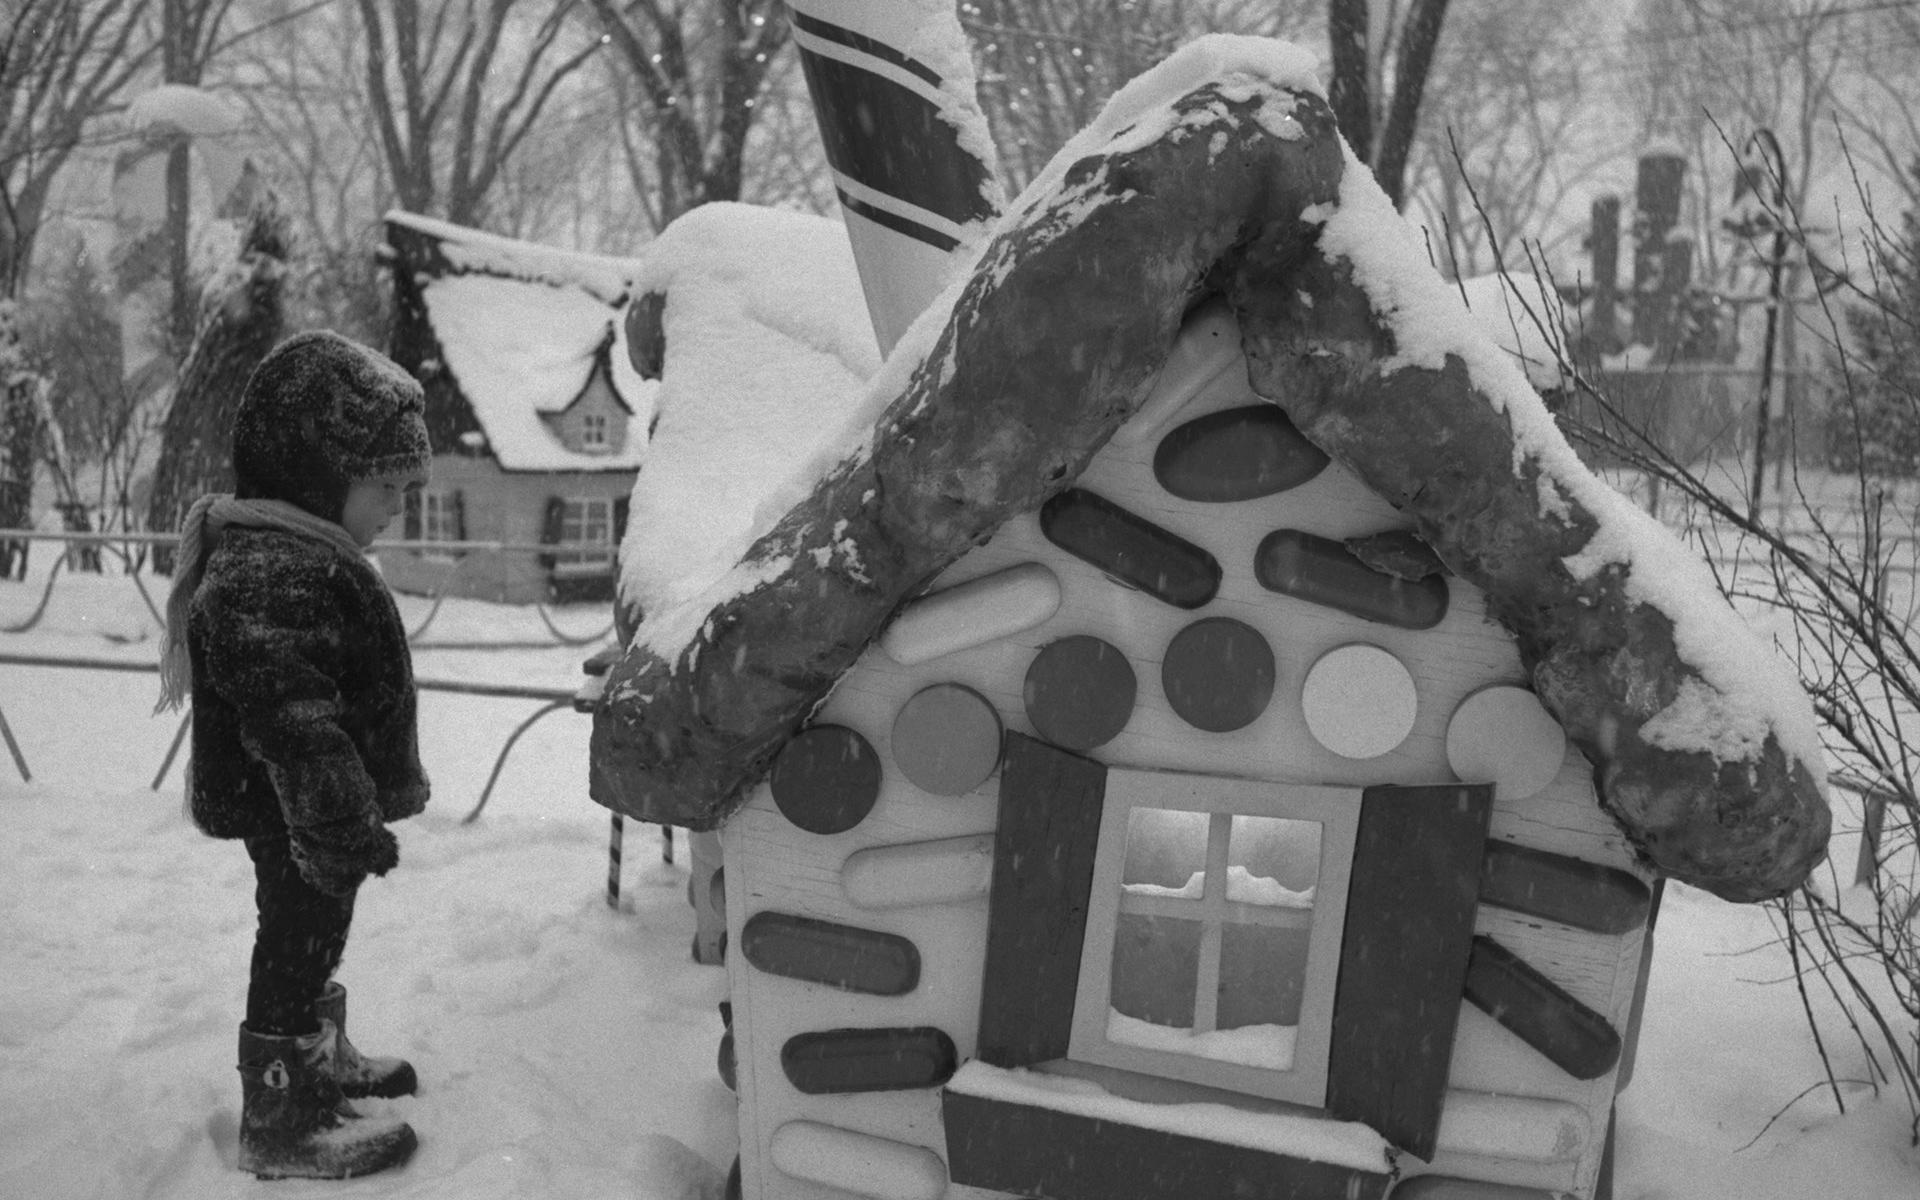 Small child in winter clothing looking at a candy-cane cottage